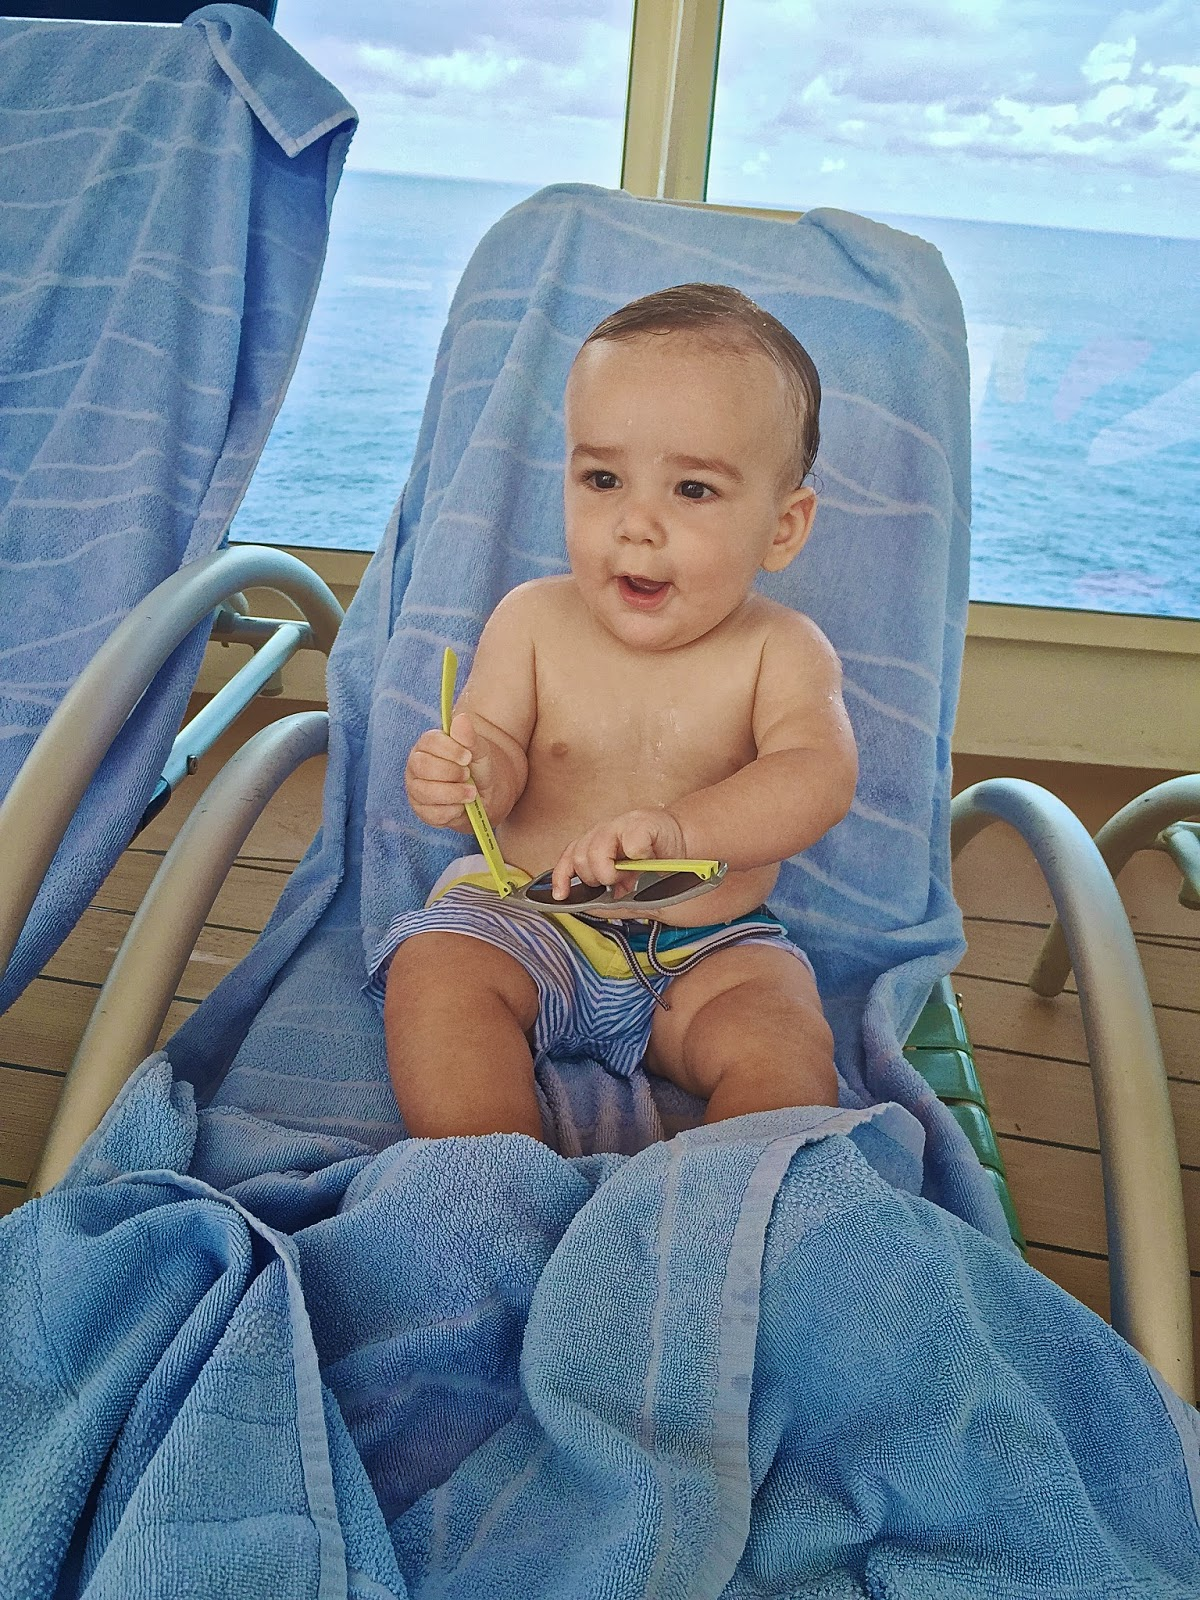 Royal Caribbean Cruise with infant